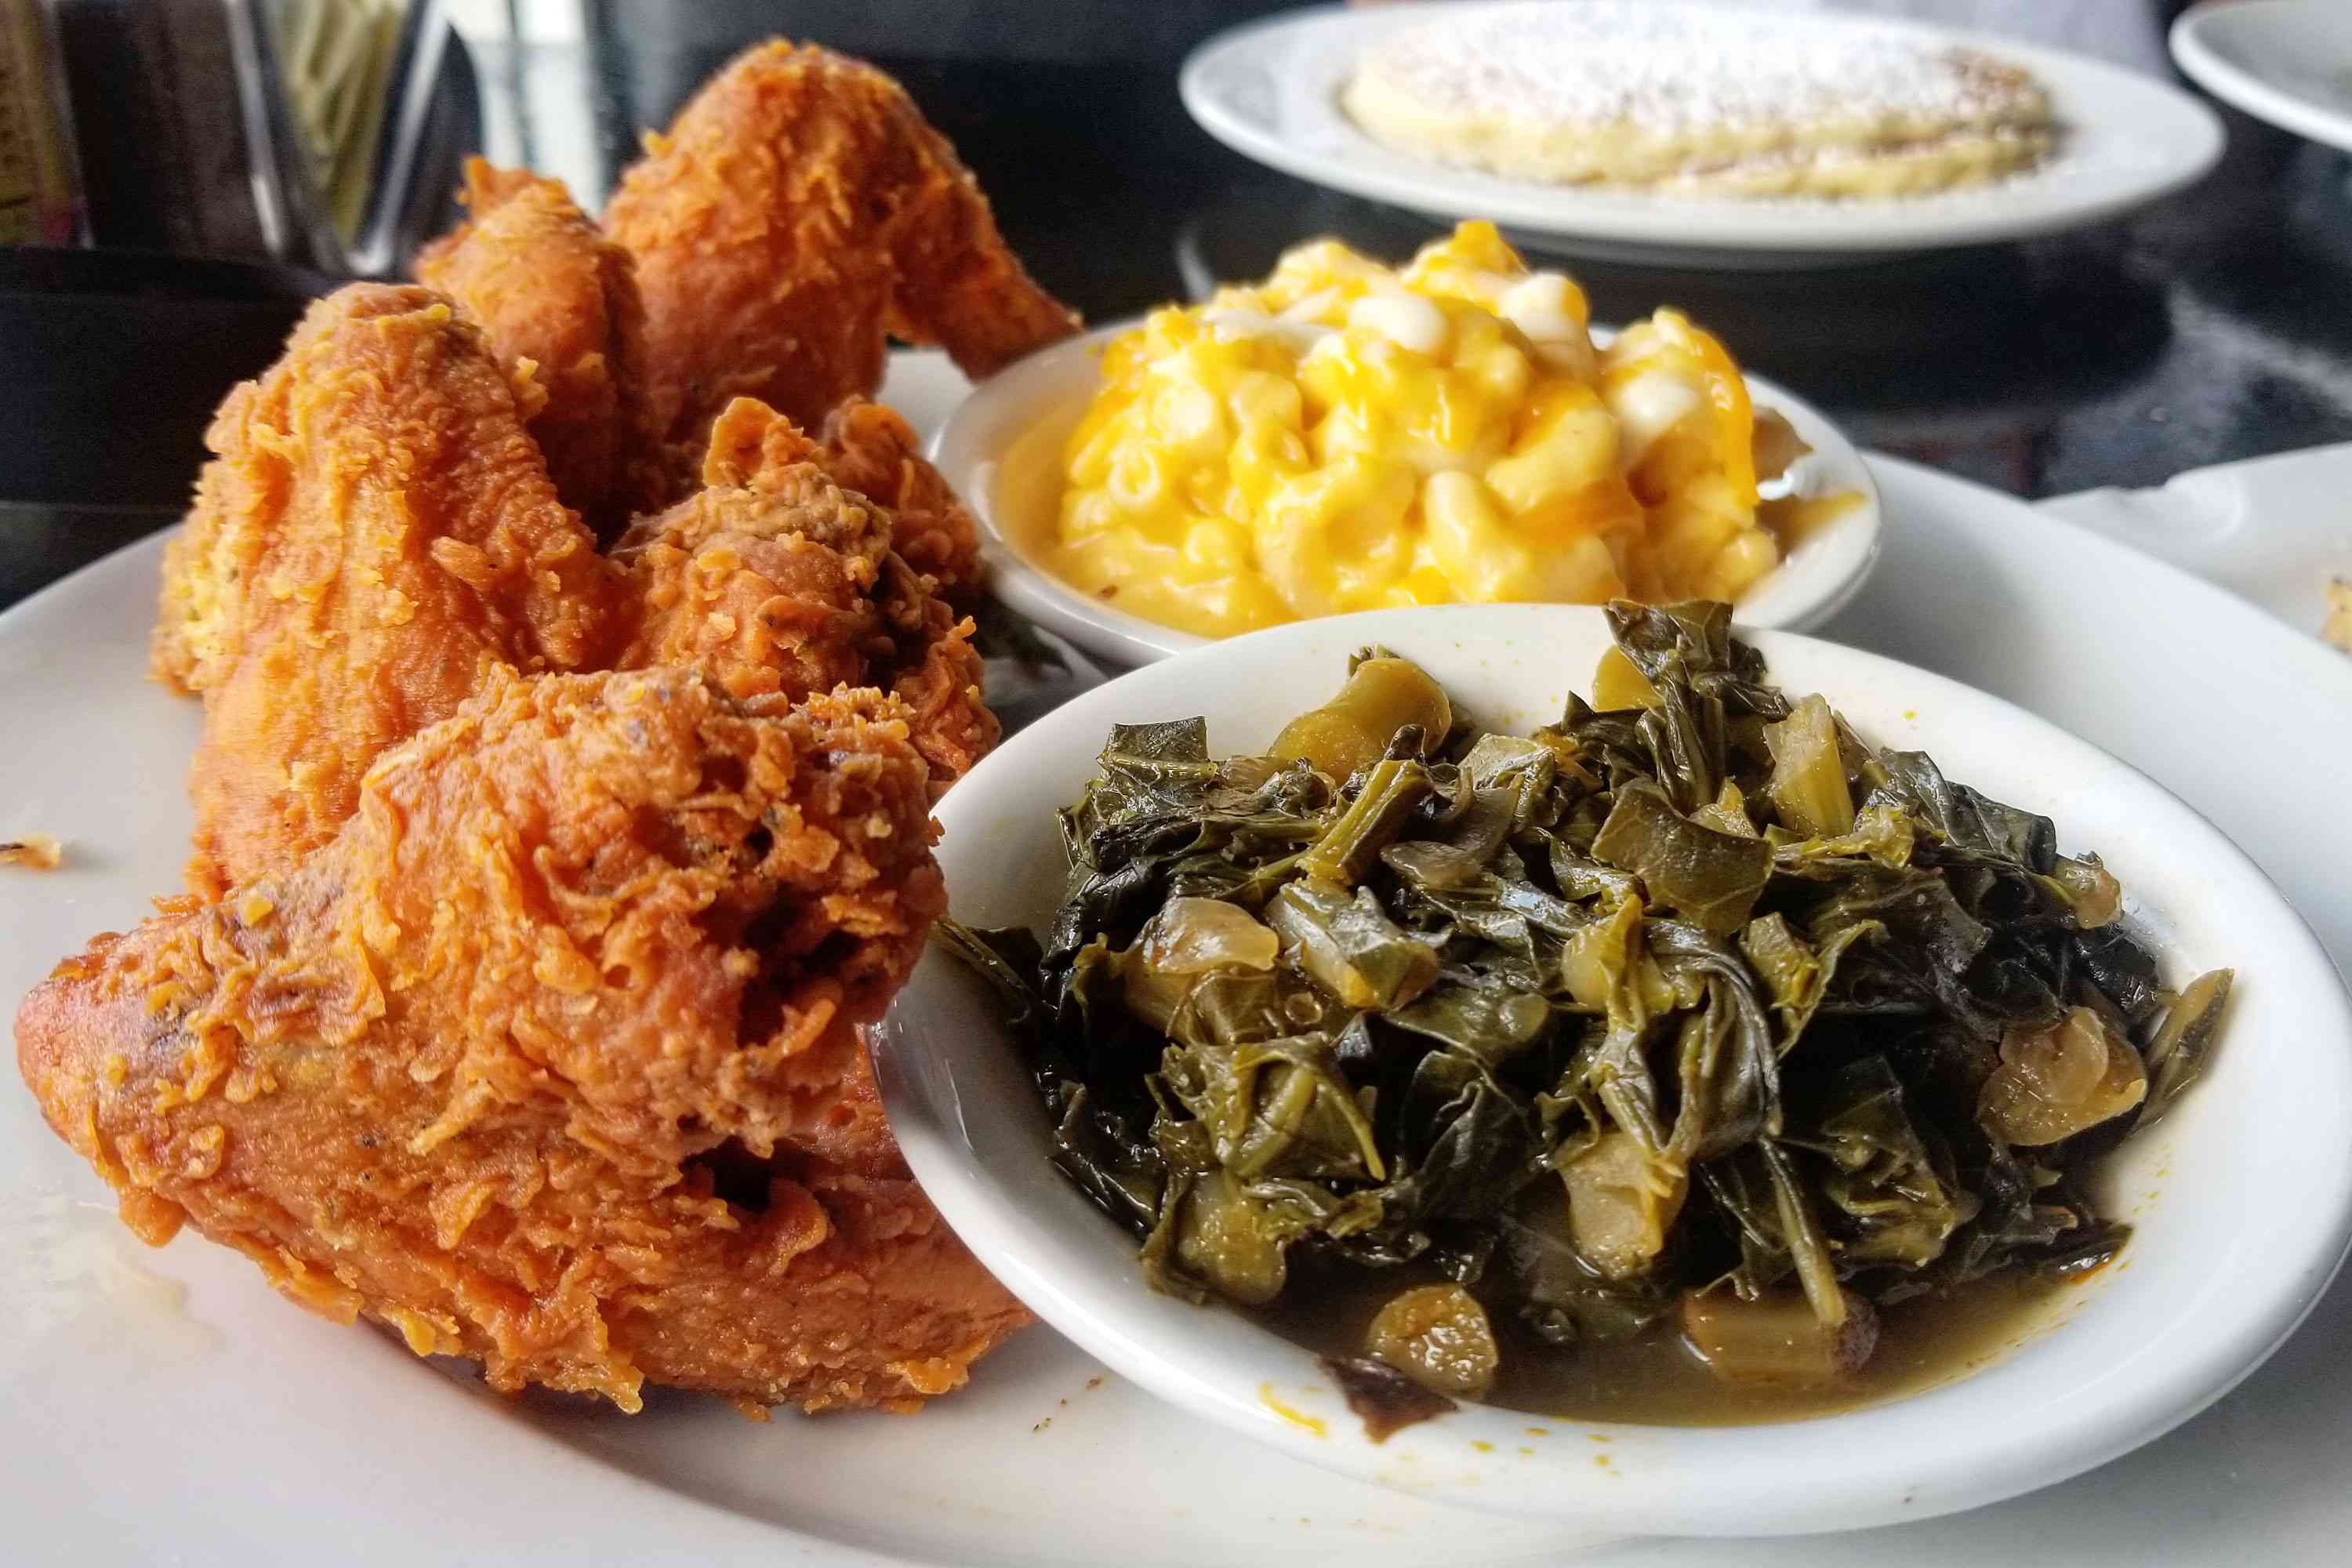 Fried Chicken with collard greens and mac and cheese